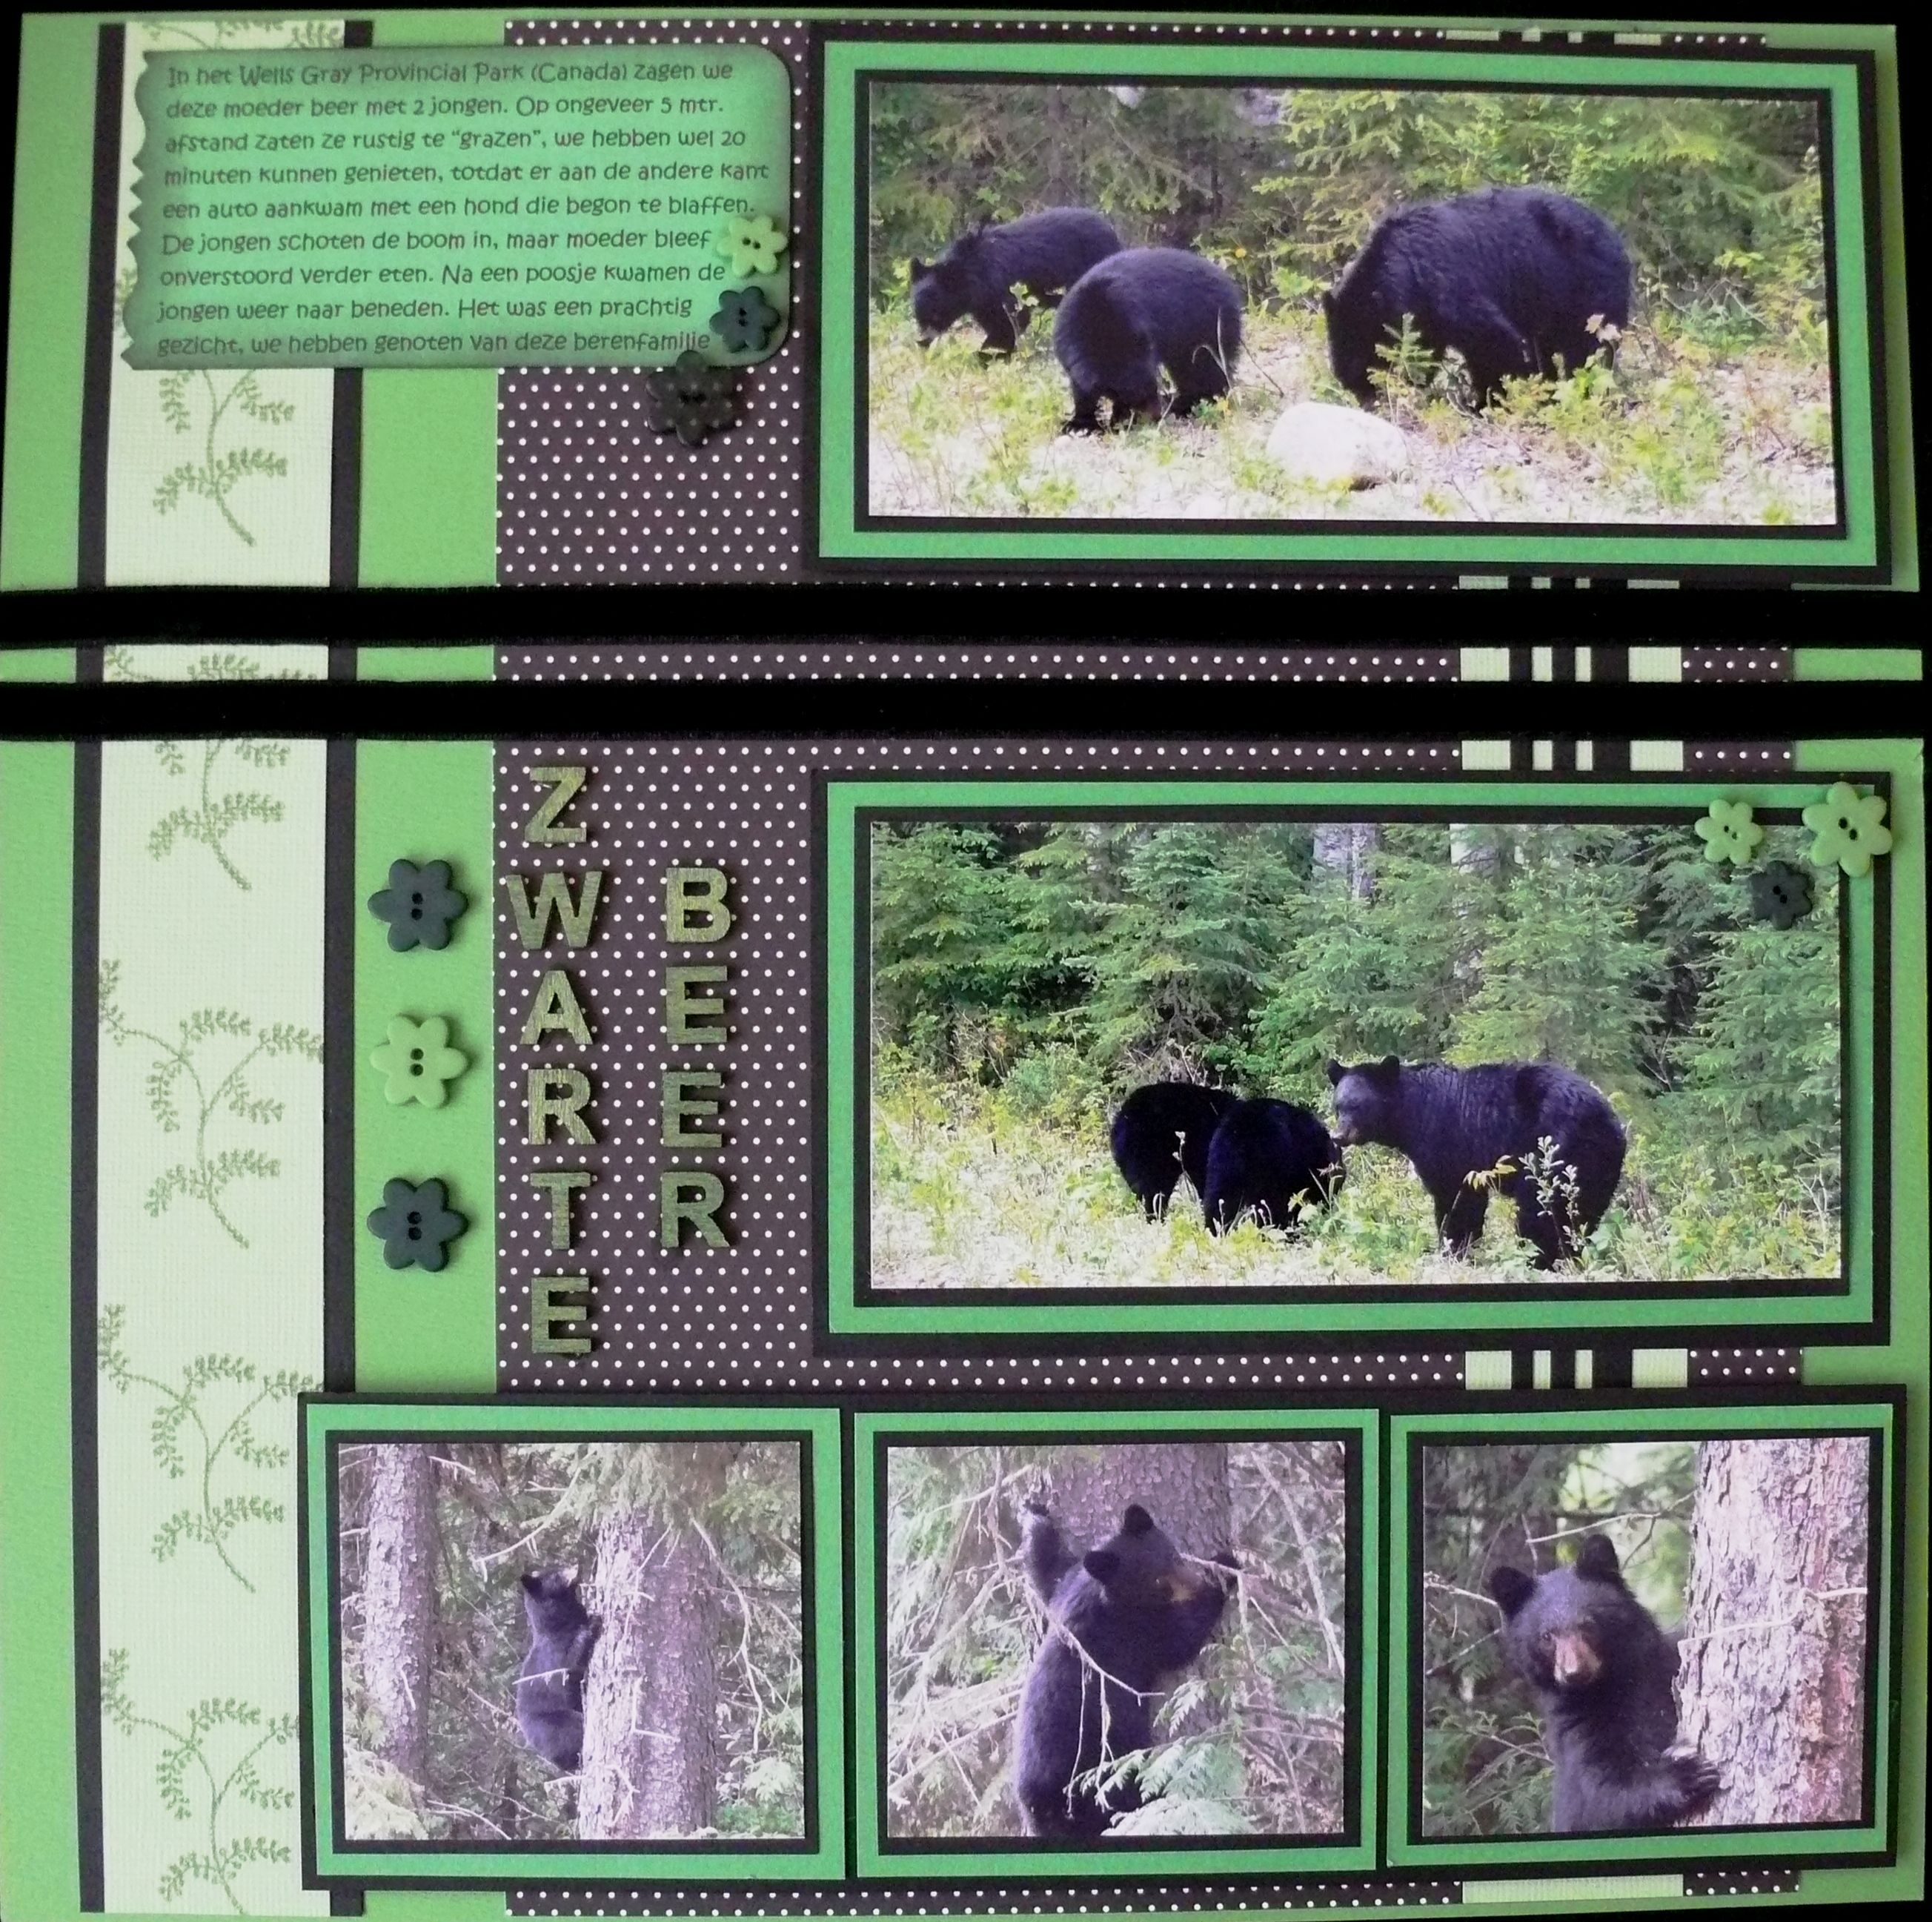 Mirror this to make a double...bear country SD 2011